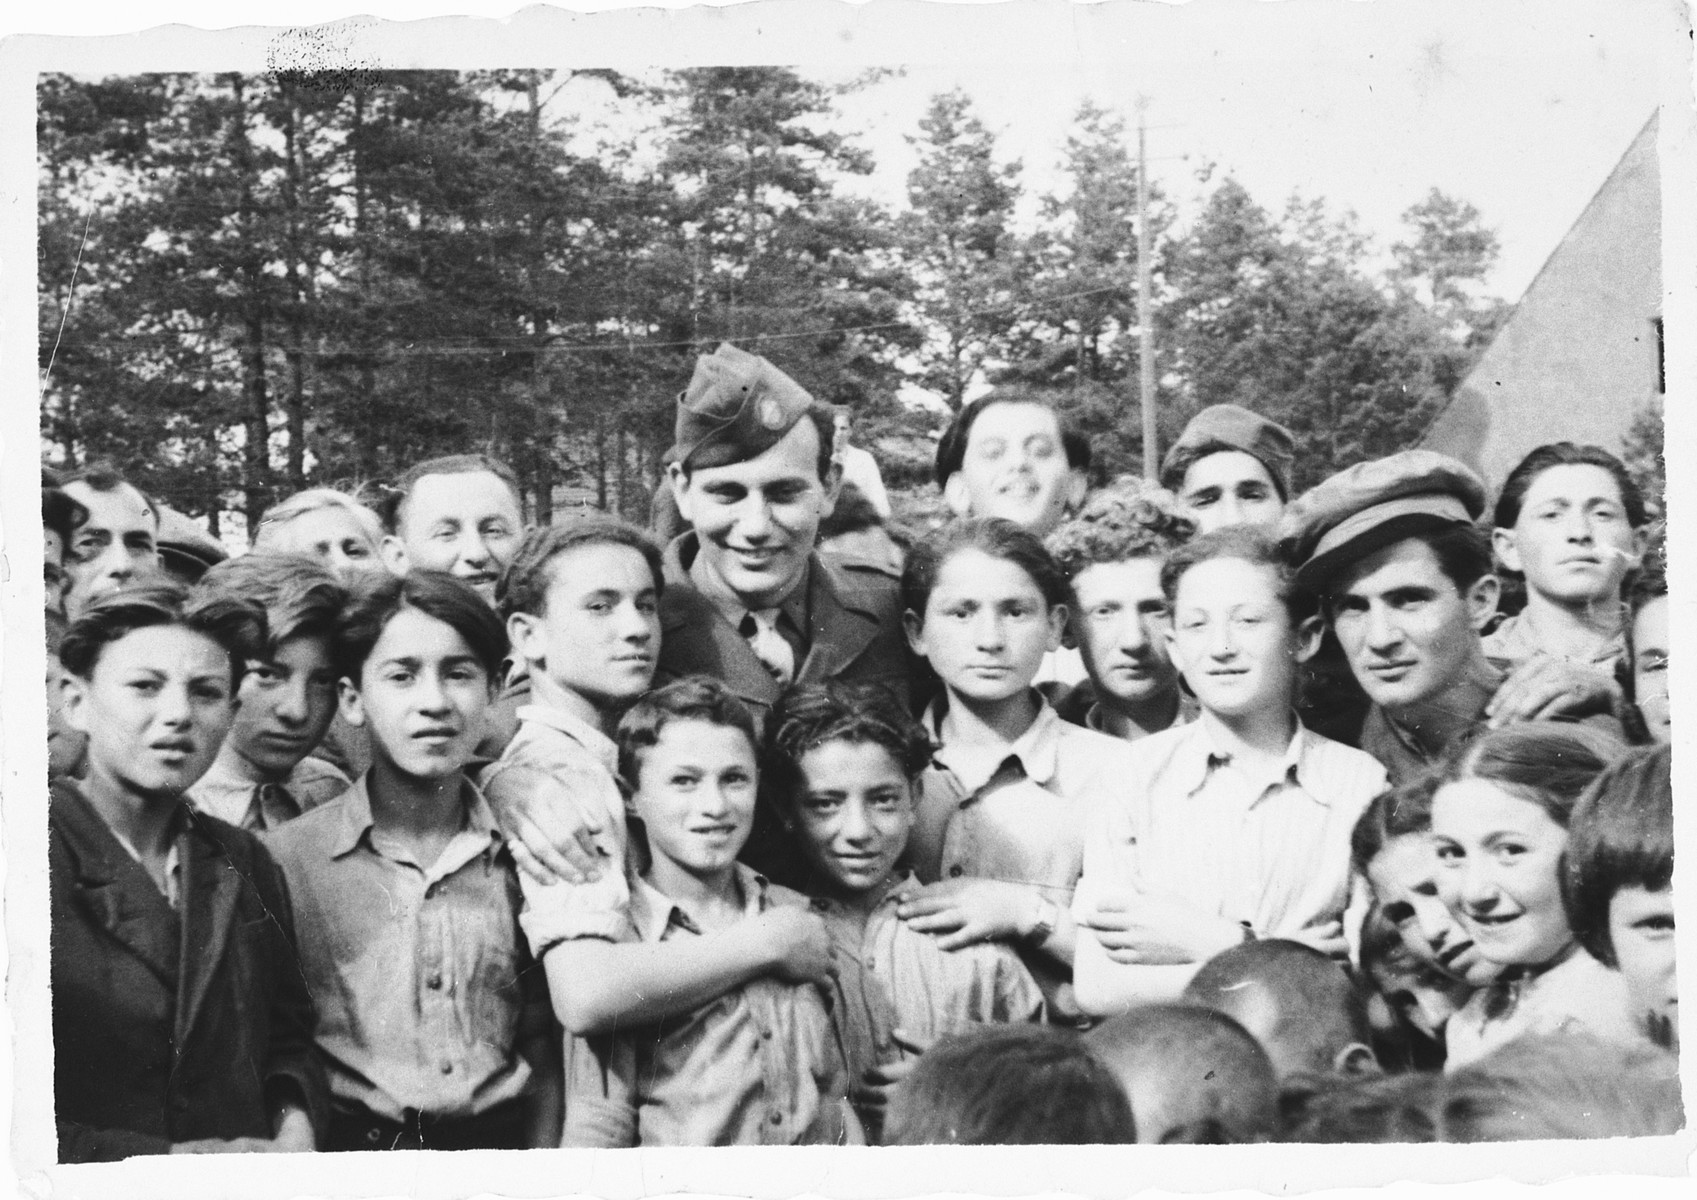 A large group of children gathers around an American soldier at the Foehrenwald displaced persons camp.  Among those pictured are Sonia Dzienciolski (bottom right) and  Paul Brottman among the children (lower left).